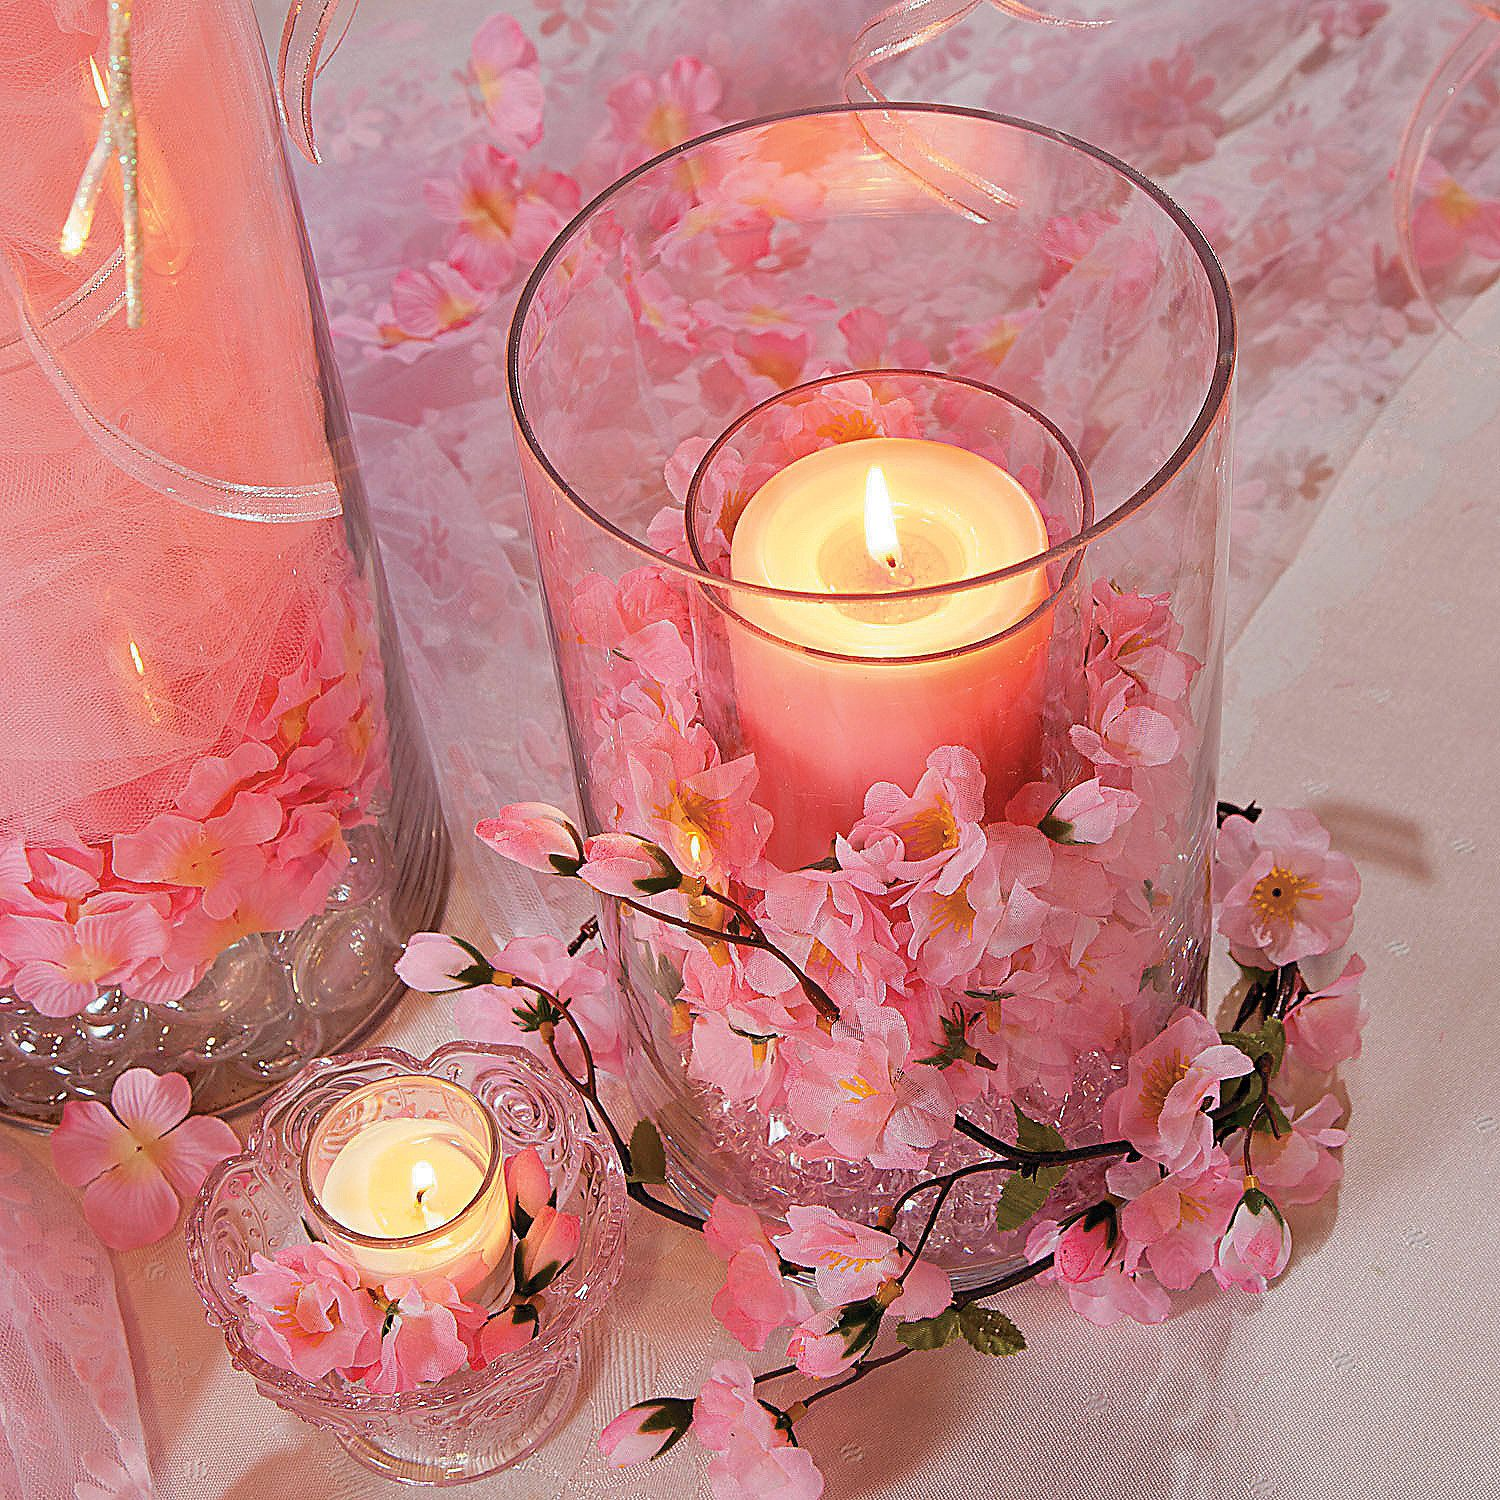 Cherry Blossom Candle Holder Orientaltrading Com Candle Wedding Centerpieces Cherry Blossom Candle Cherry Blossom Wedding Theme